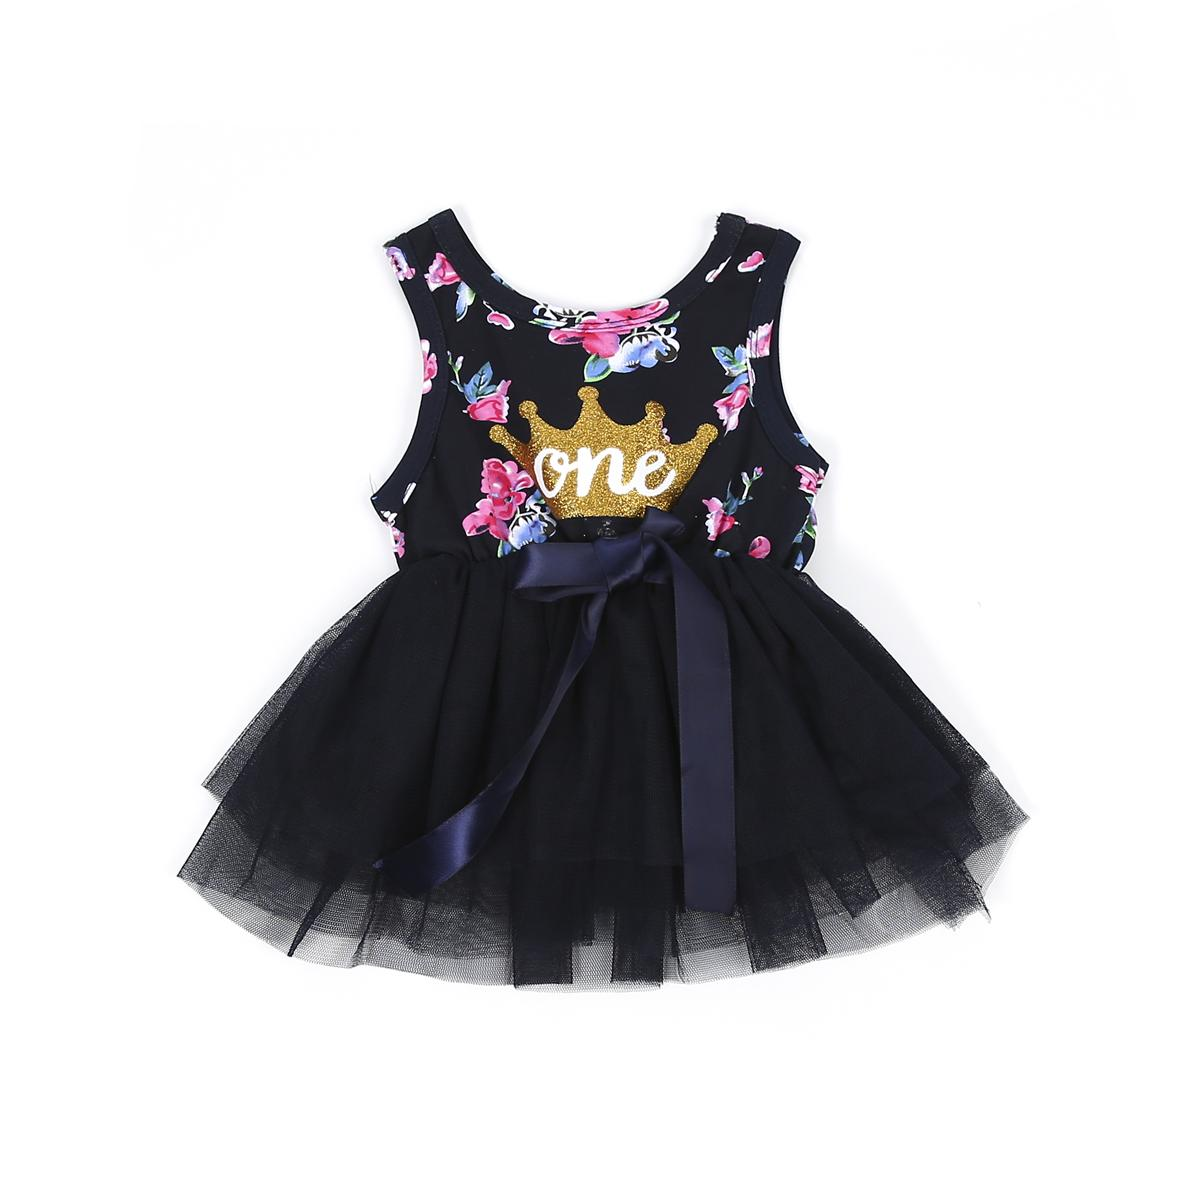 Kid Girls Princess Baby Dress Newborn Infant Baby Girl Clothes Purple Floral Crown Print Tutu Ball Gown Party Dresses